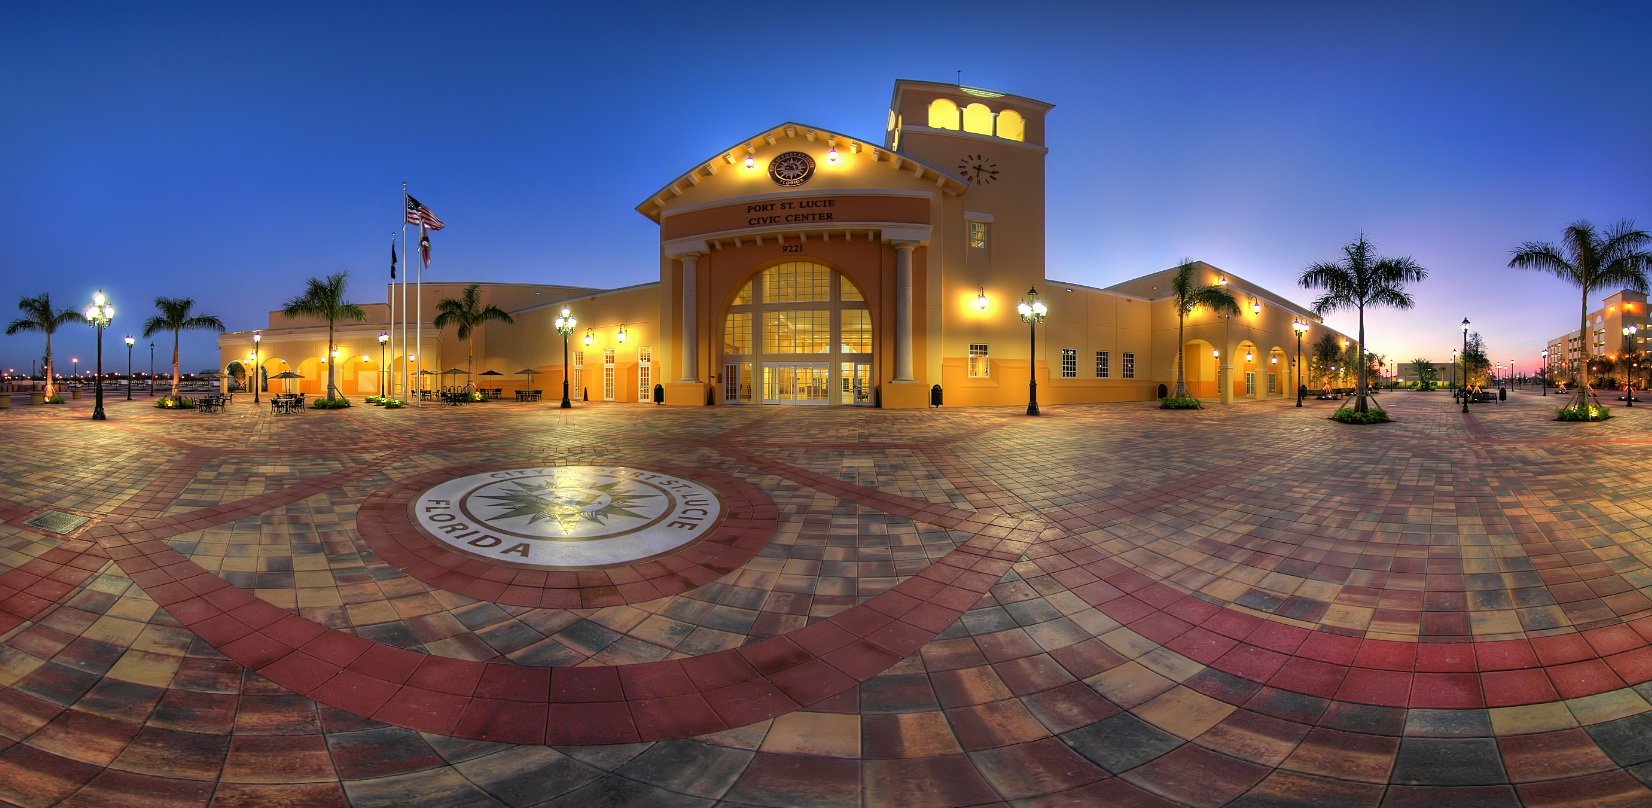 Port St. Lucie, Fla. - City of Port St. Lucie